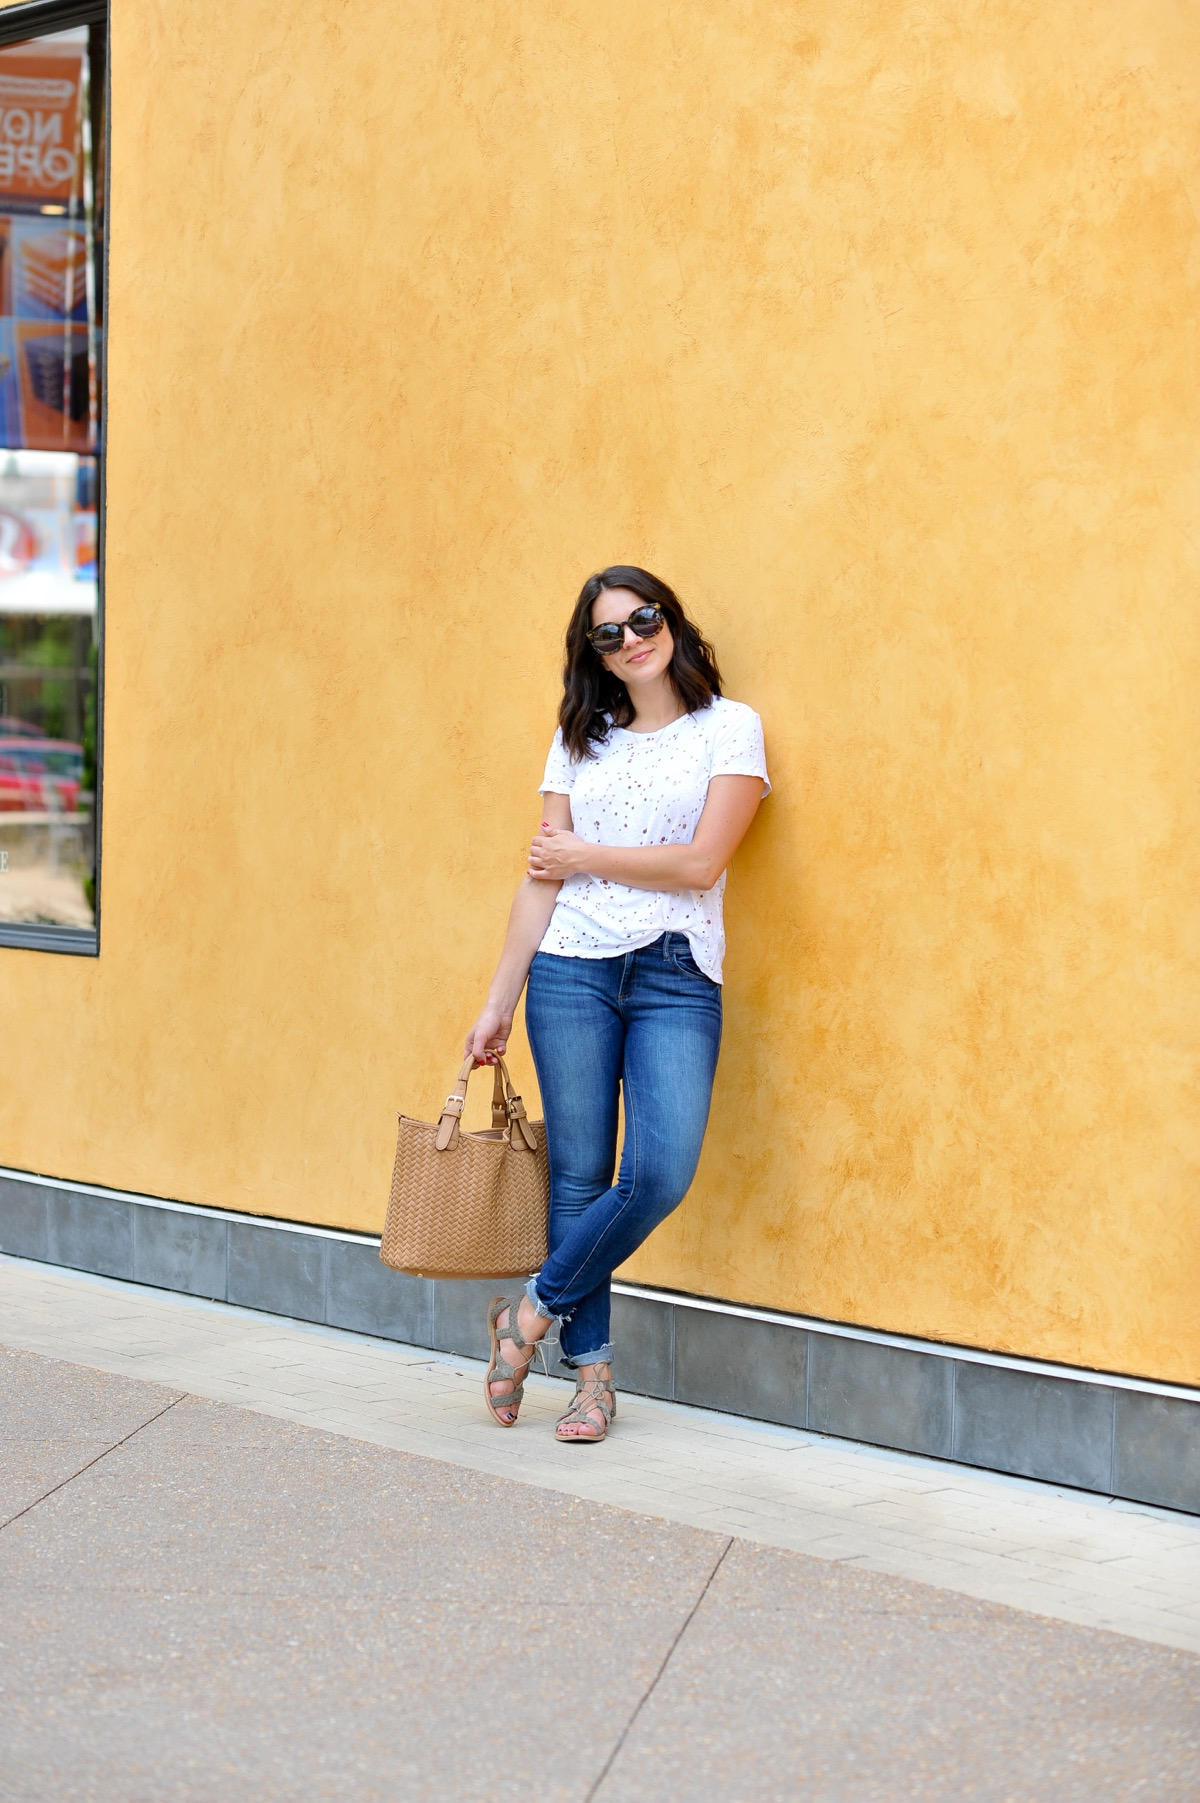 Casual summer outfit ideas - My Style Vita @mystylevita - 2